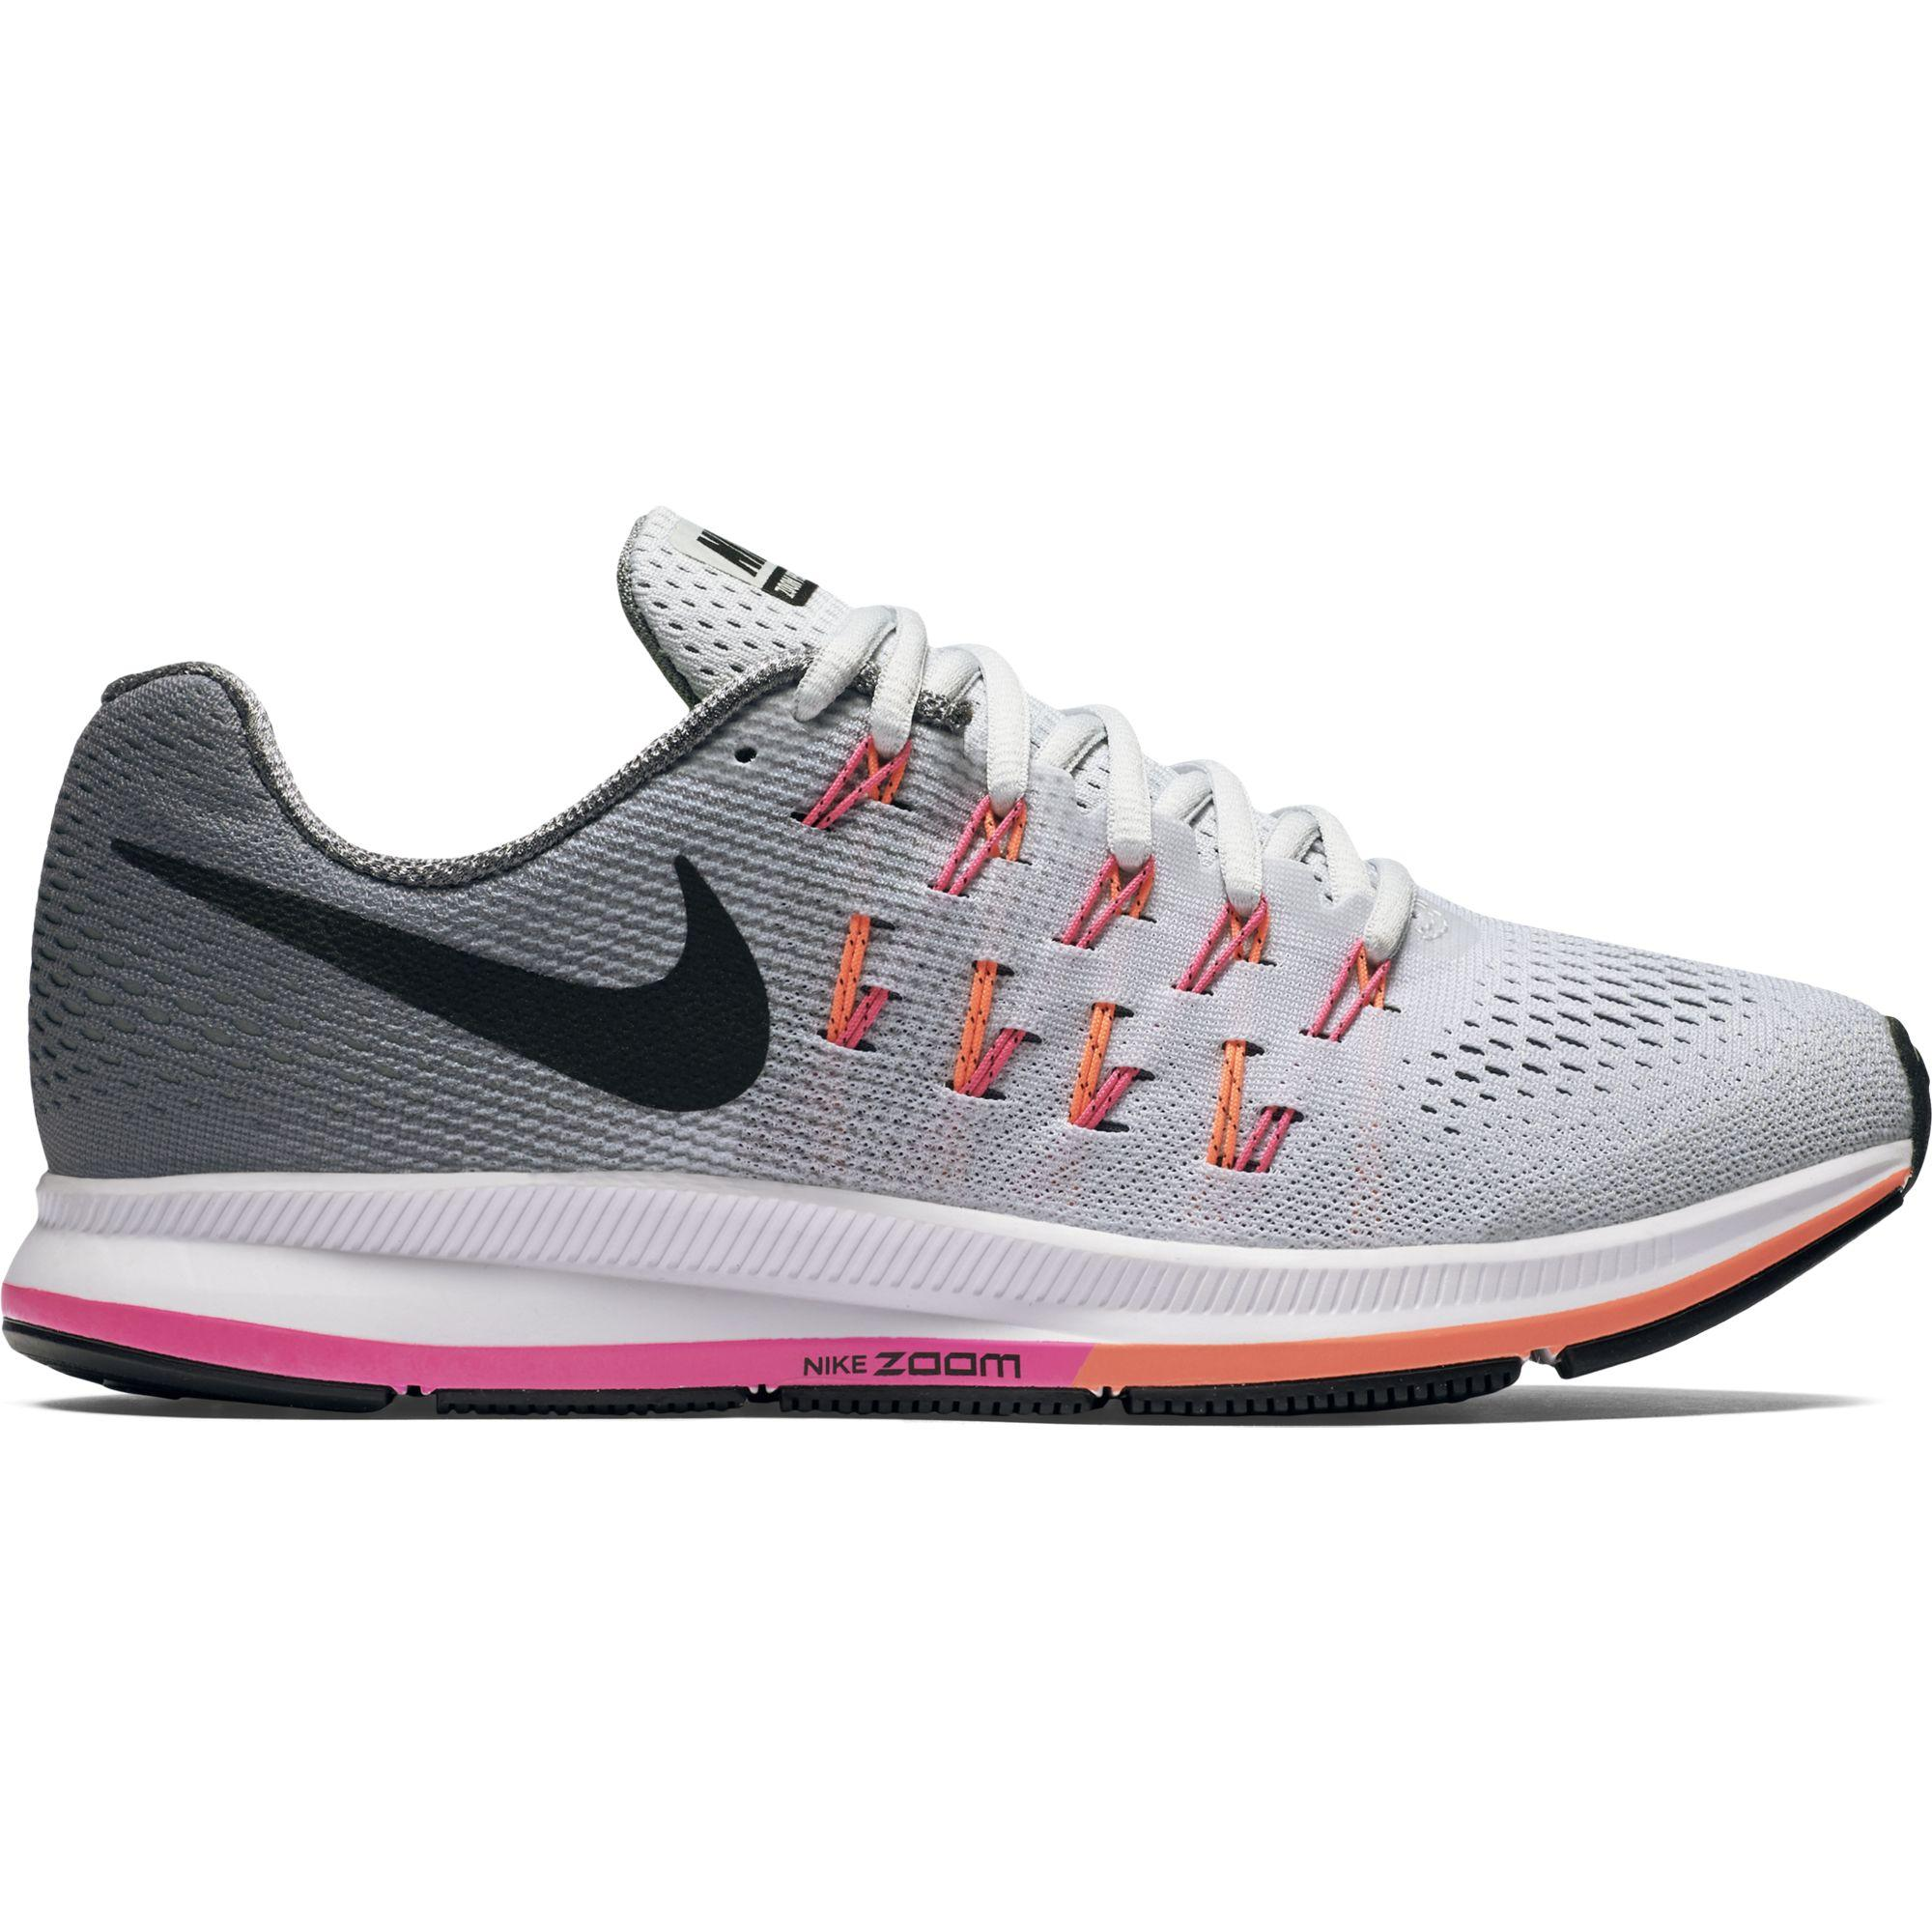 San Francisco 578d2 6c939 Women's | Nike Air Zoom Pegasus 33